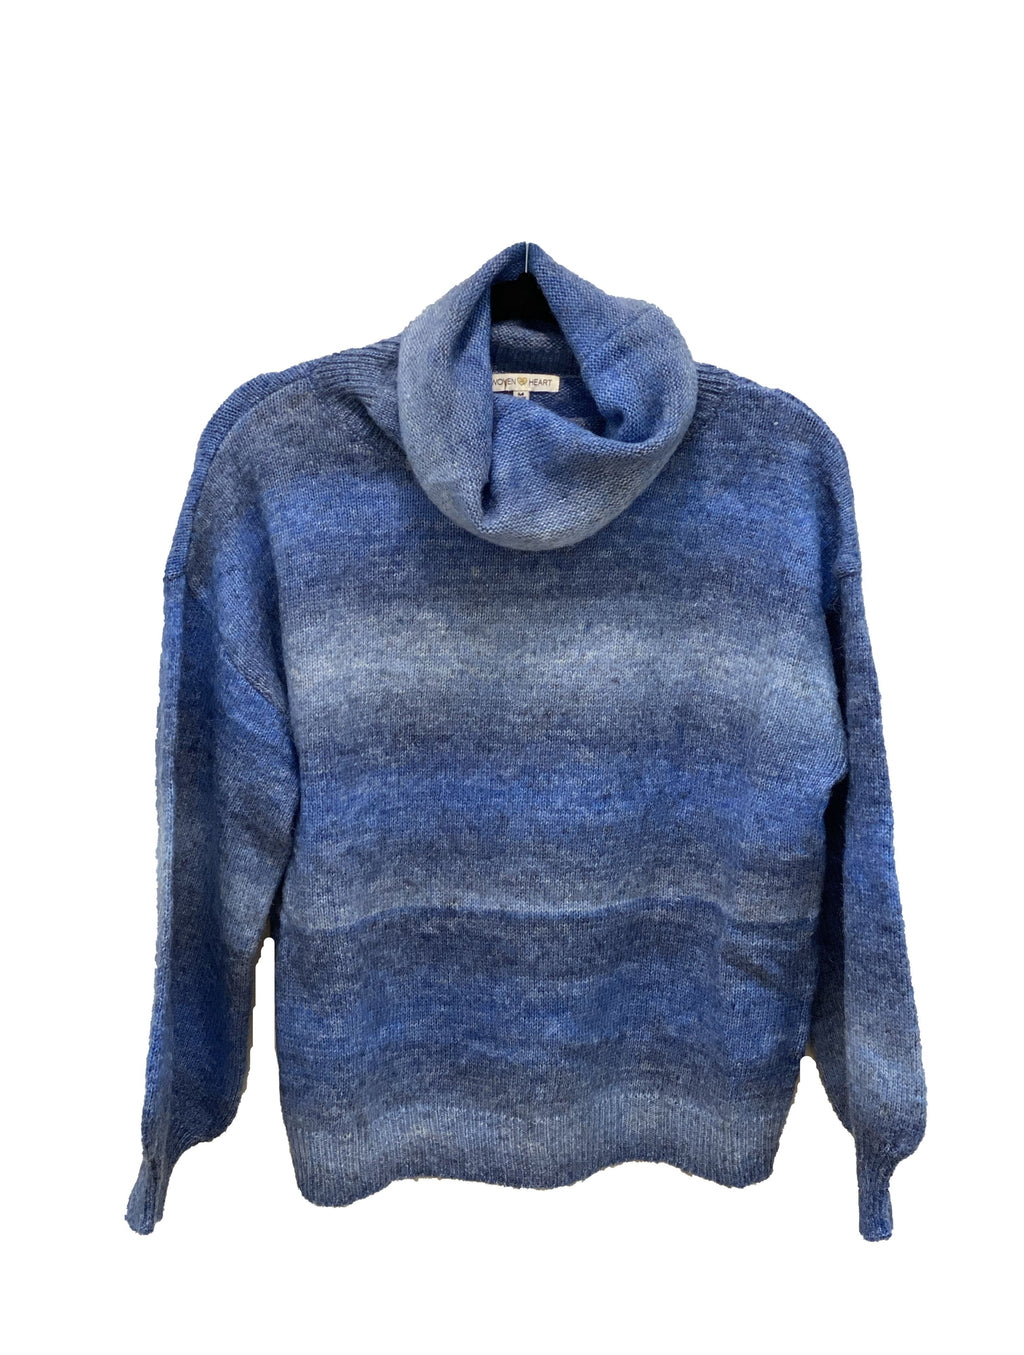 Woven Heart Woven Ombre Turtleneck in Blue